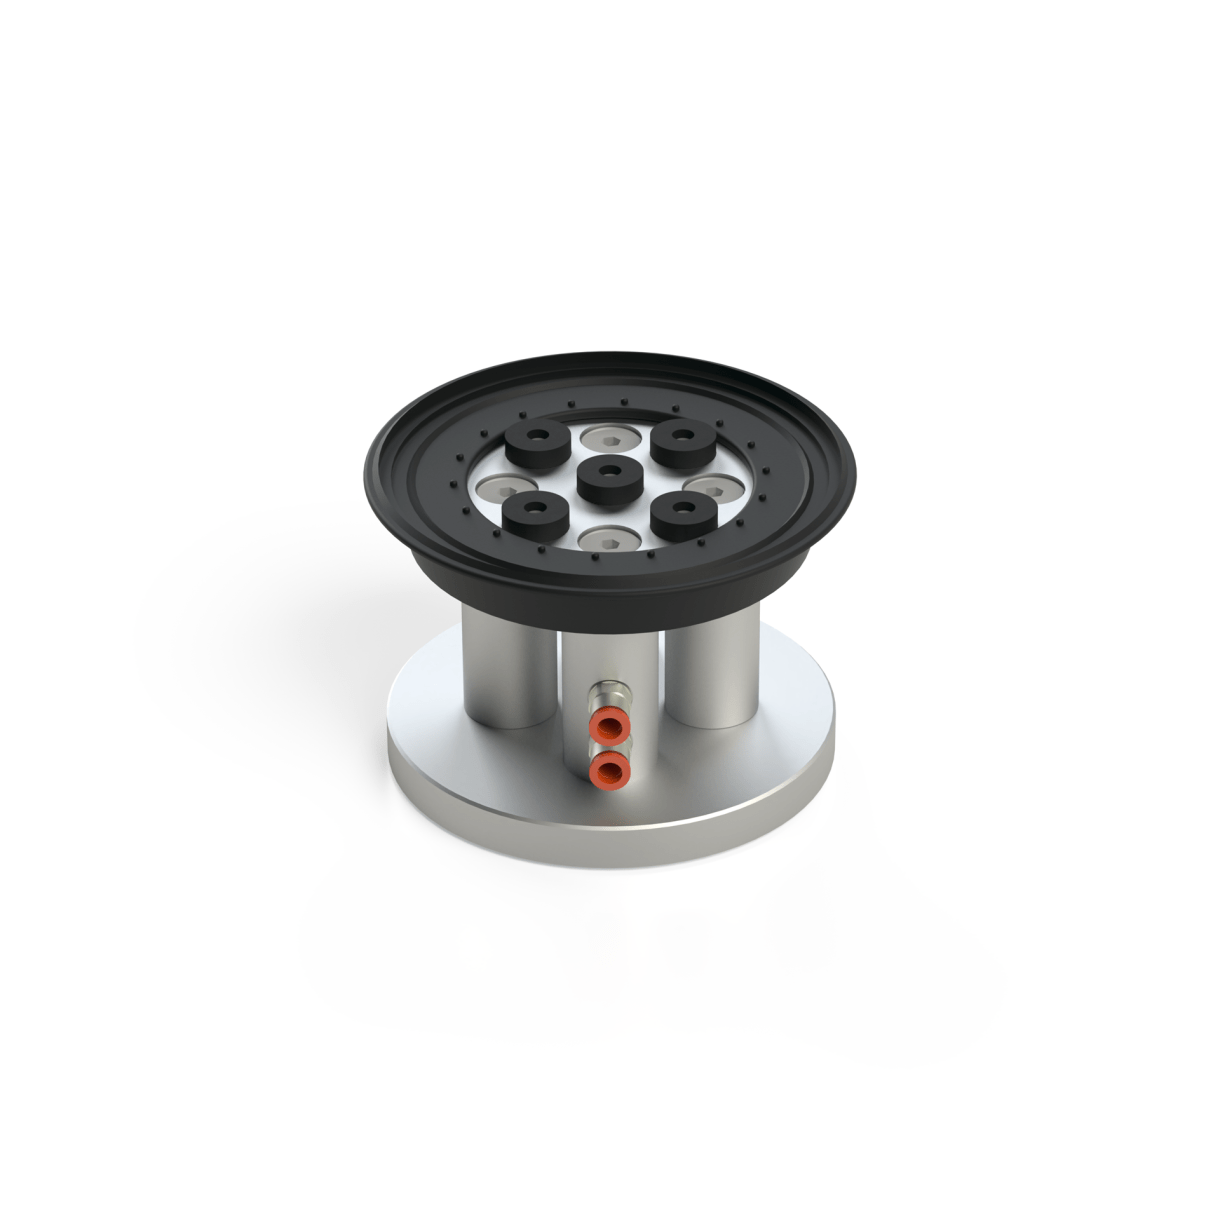 160 mm Round Suction Cup (glass) by BLICK INDUSTRIES